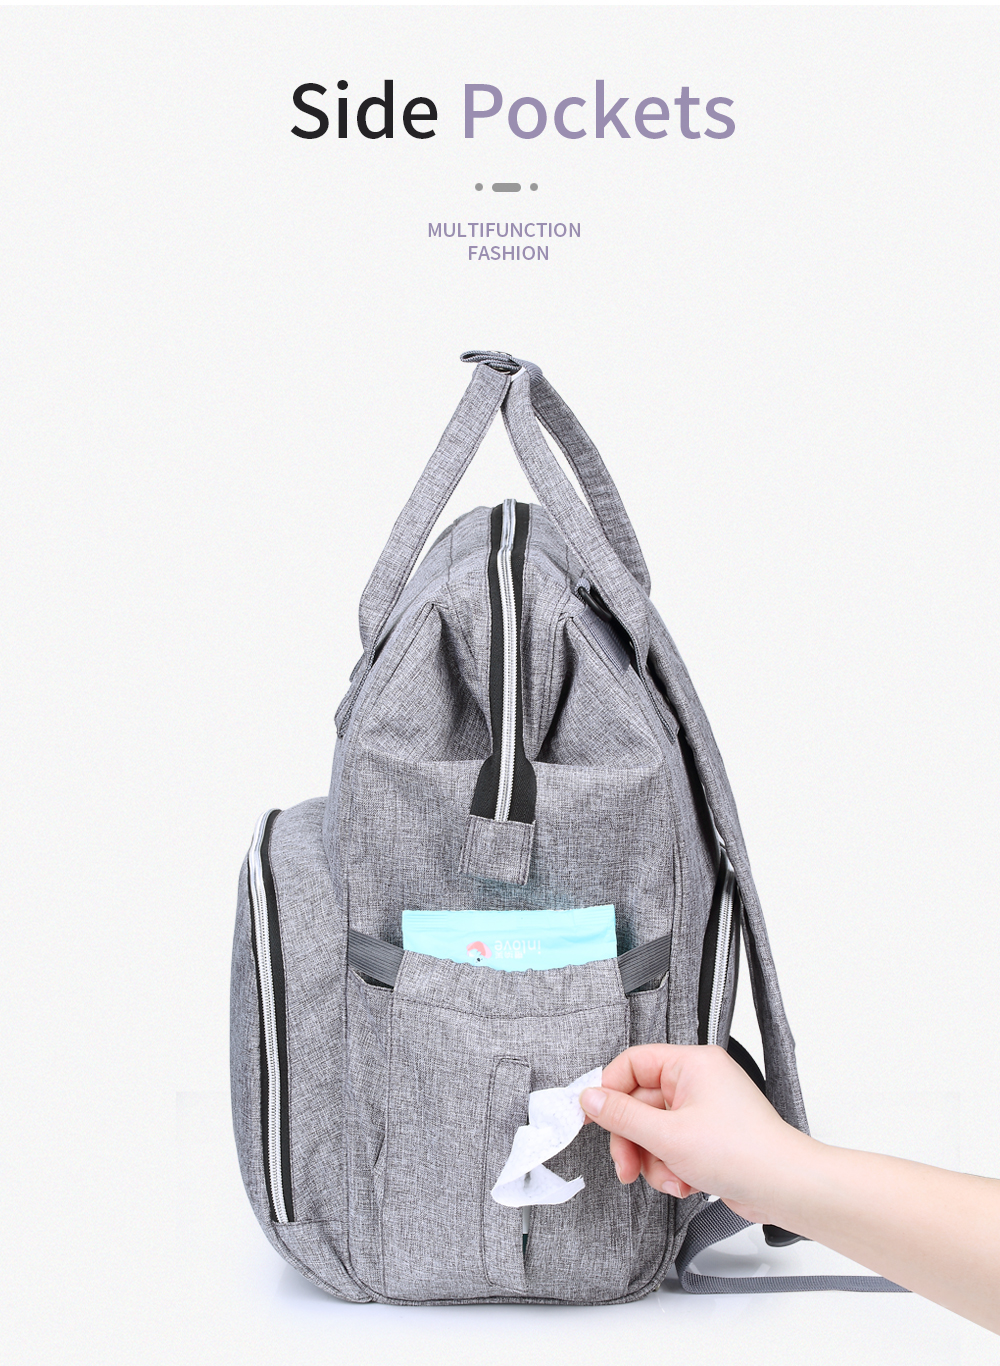 HTB1mLM2cQ5E3KVjSZFCq6zuzXXah Insular Brand Nappy Backpack Bag Mummy Large Capacity Stroller Bag Mom Baby Multi-function Waterproof Outdoor Travel Diaper Bags